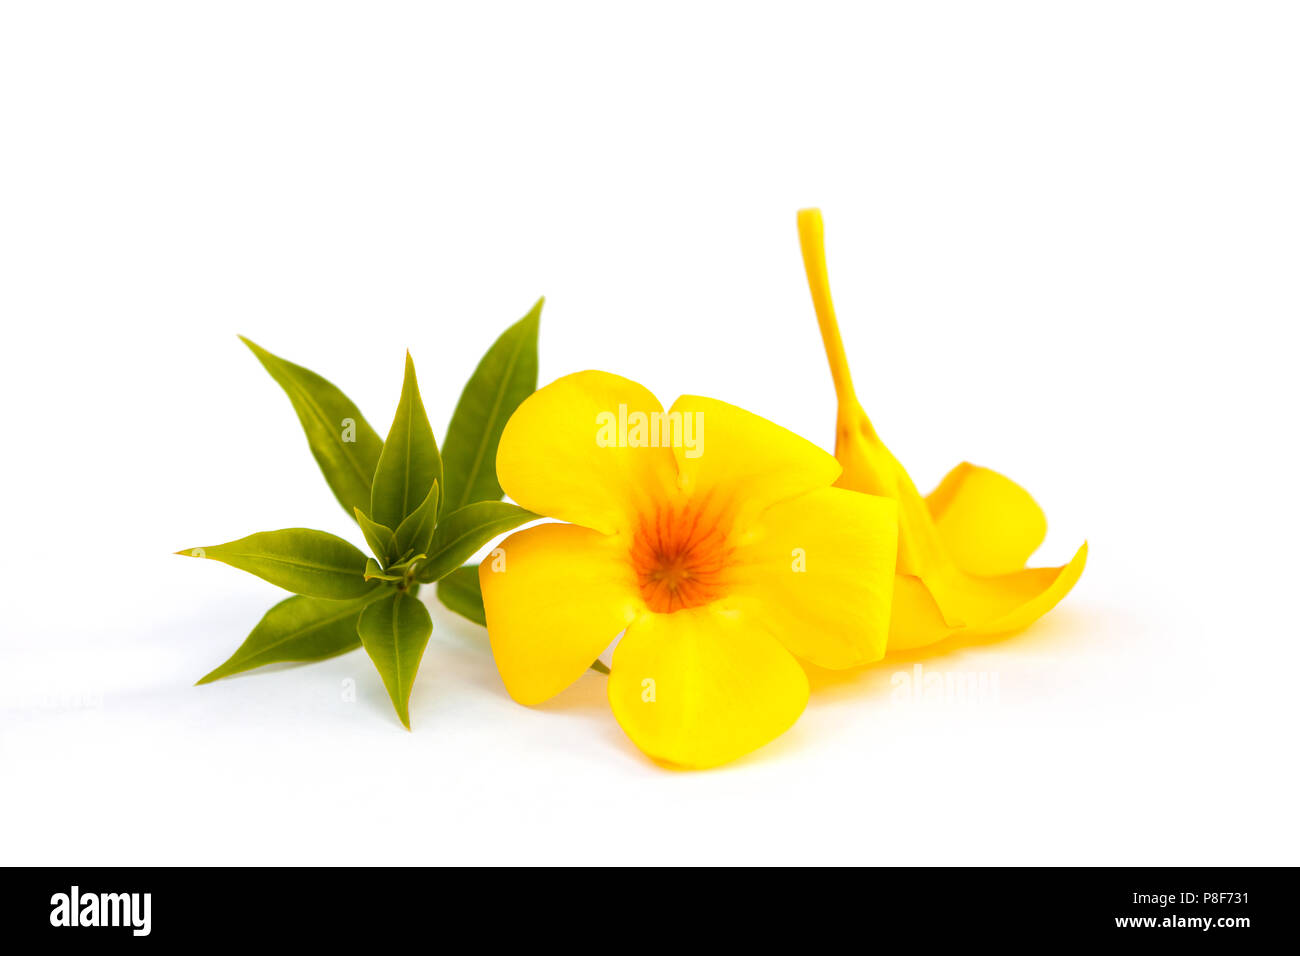 Golden Trumpet Or Yellow Bell Flower And Leaves Isolated On White